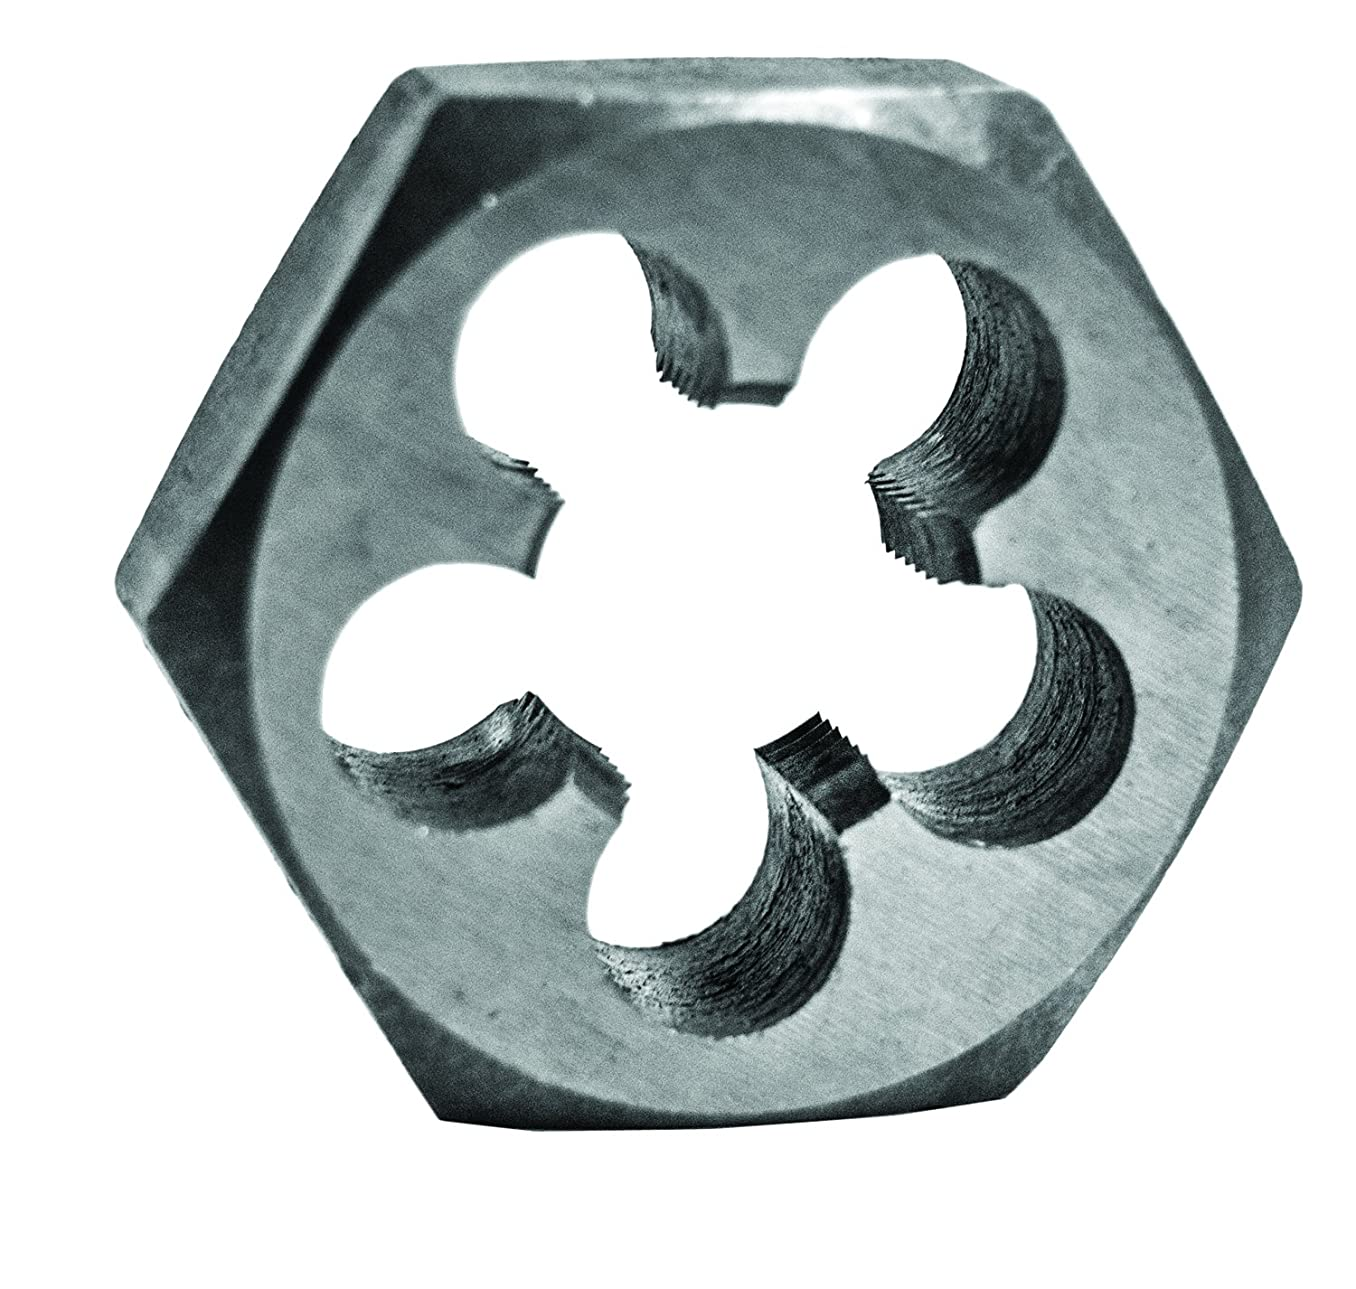 Century Drill & Tool 98213 High Carbon Steel Fractional Hexagon Die, 5/8-11 NC